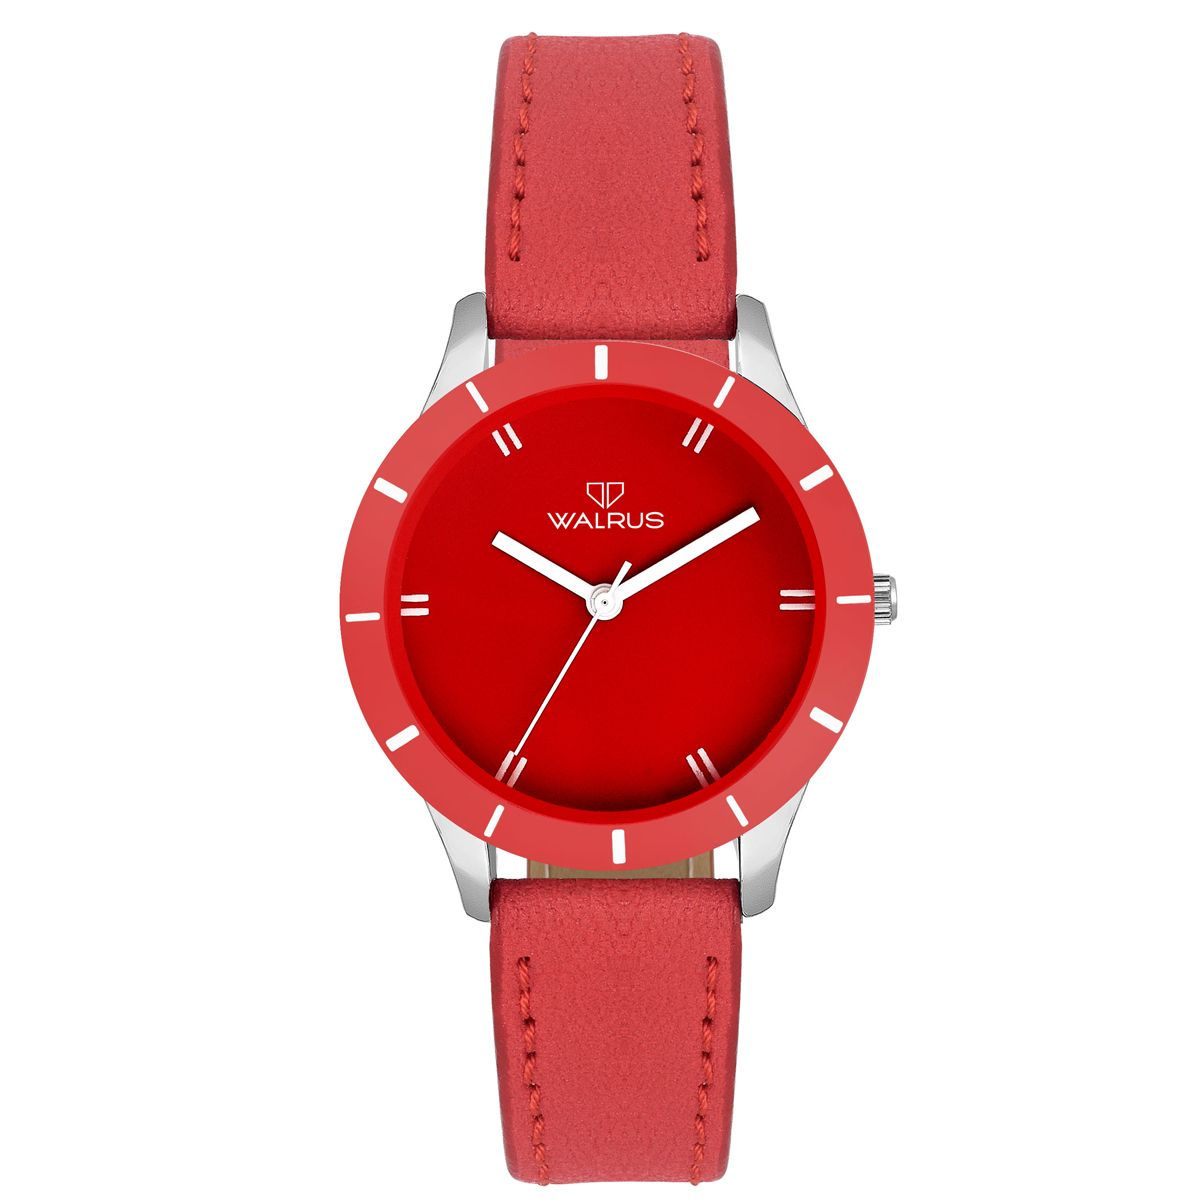 Walrus Eve Red Color Analog Women Watch -WWW-Eve -101007